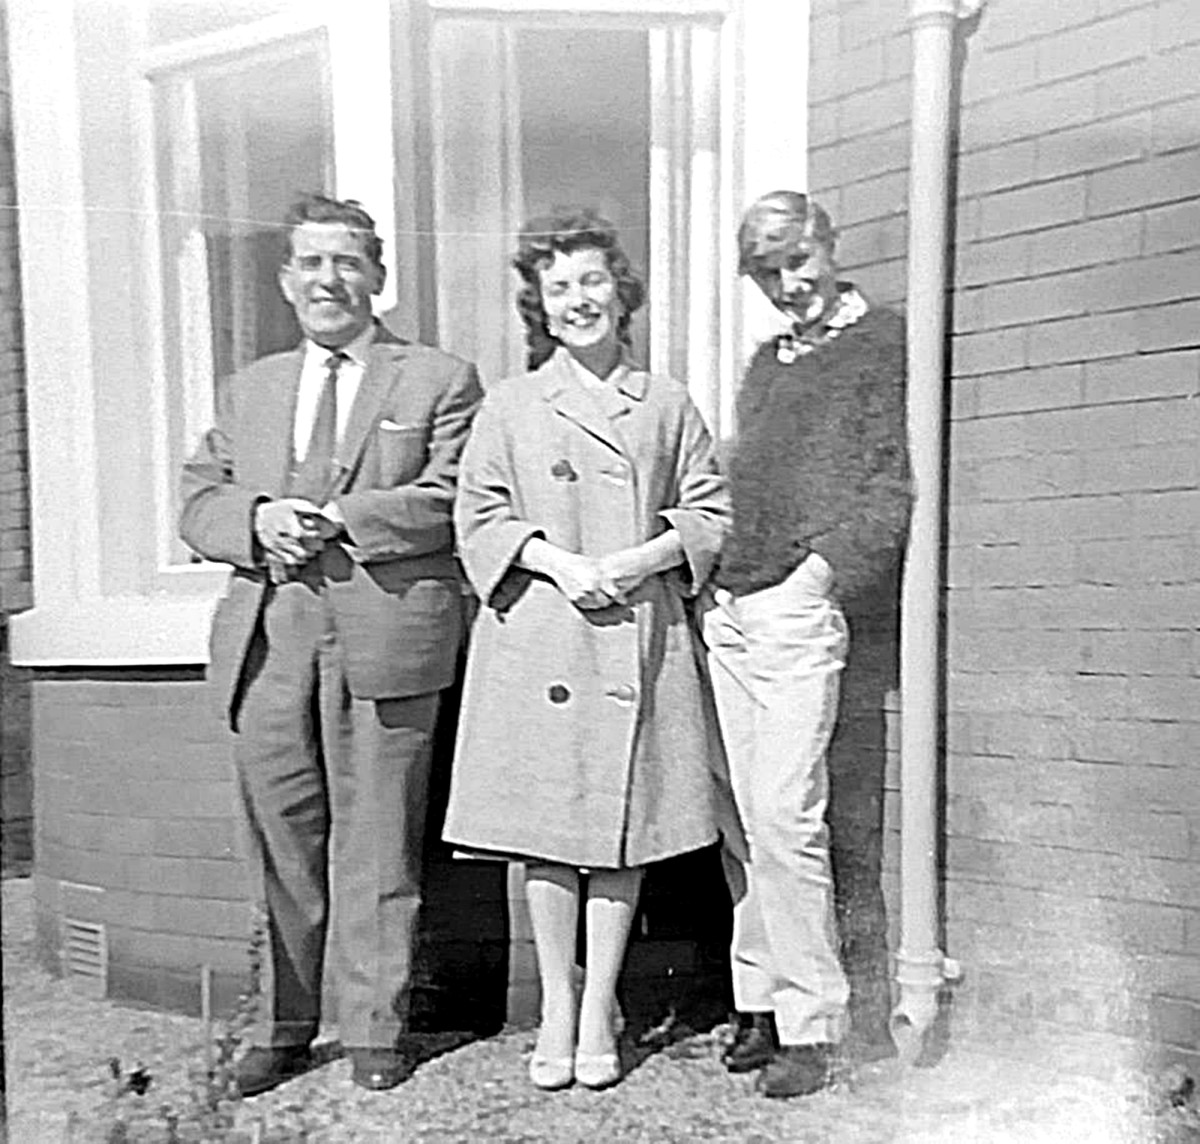 Grandad, mum and my brother Eric outside the house where we grew up in Rectory Road, Blackpool